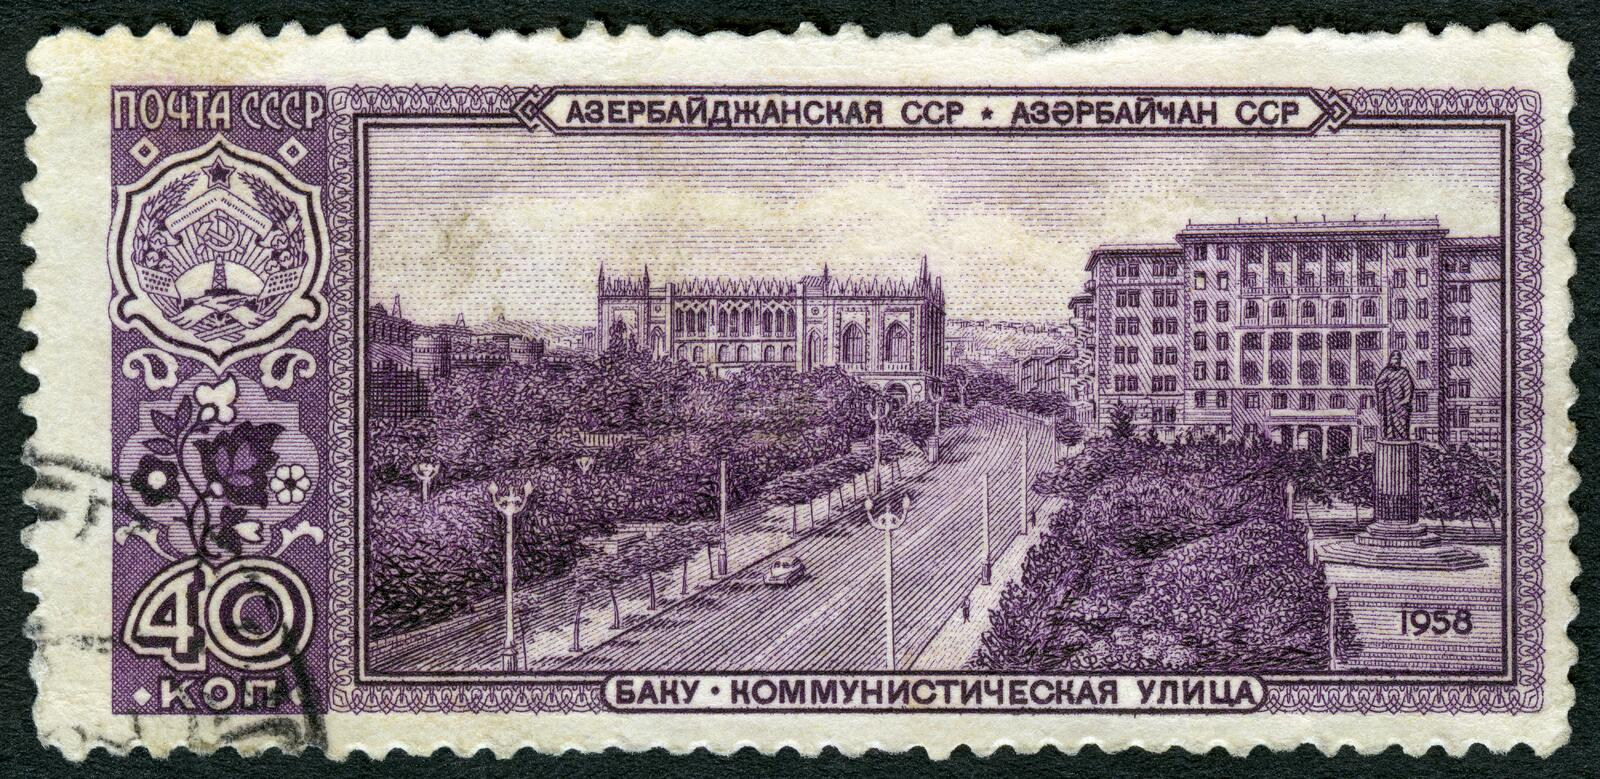 USSR - 1958: shows Communist Street, Baku, Azerbaijan Soviet Socialist Republic, Capitals of Soviet Republics stock images